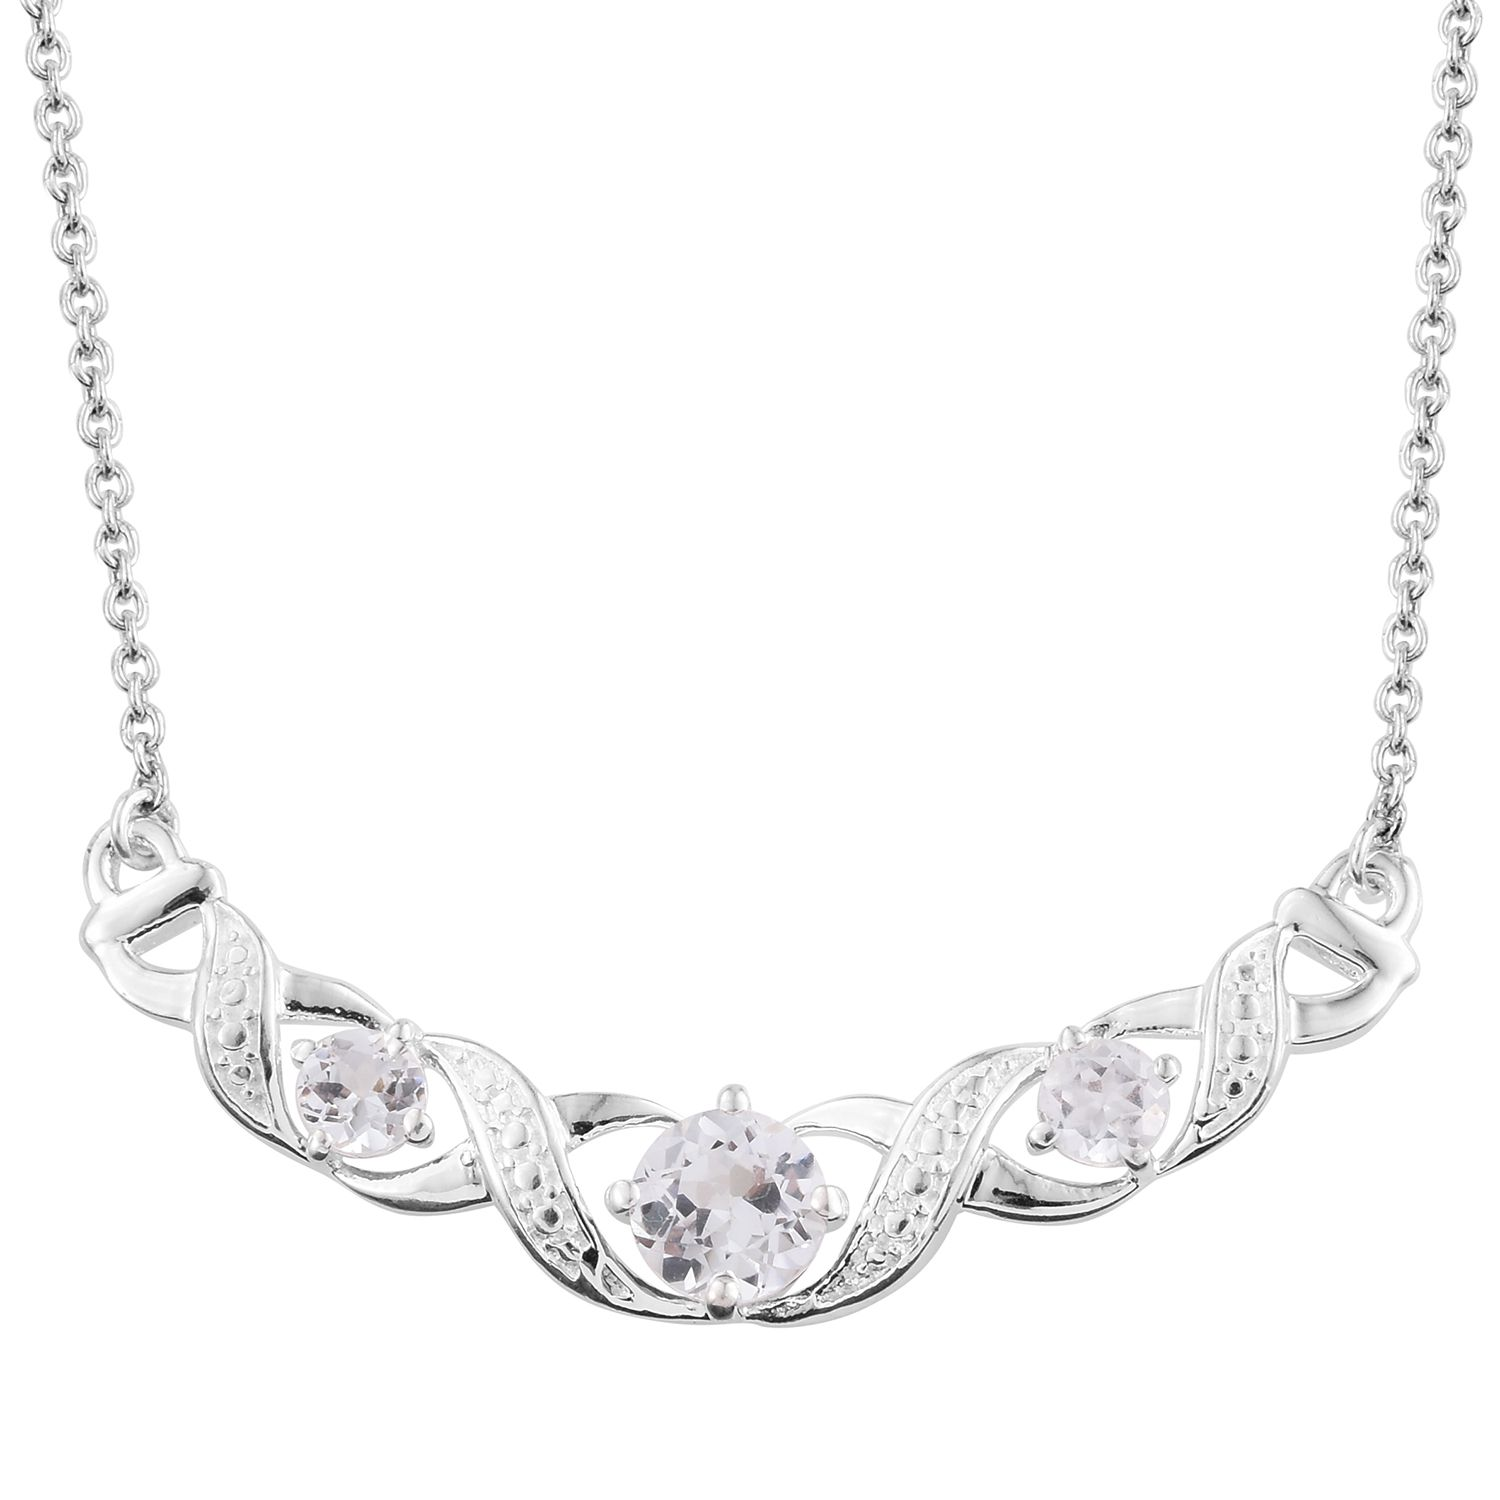 Lab Created White Sapphire Sterling Silver Bar Necklace With Stainless Steel Chain 20 In Tgw 1